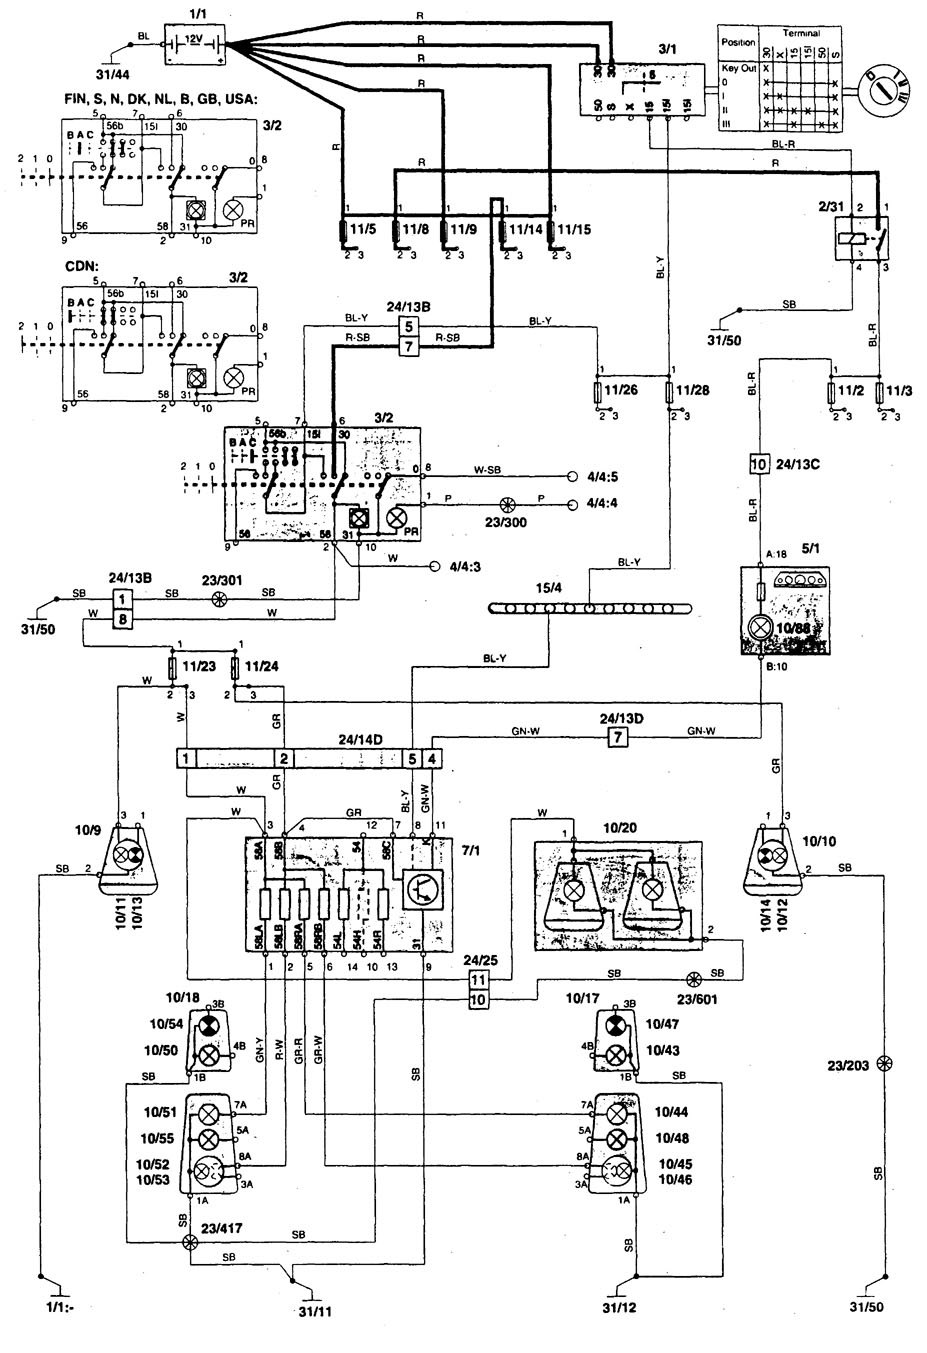 volvo 850 wiring diagram tail lamp 2 1996 volvo 850 (1996) wiring diagrams tail lamp carknowledge